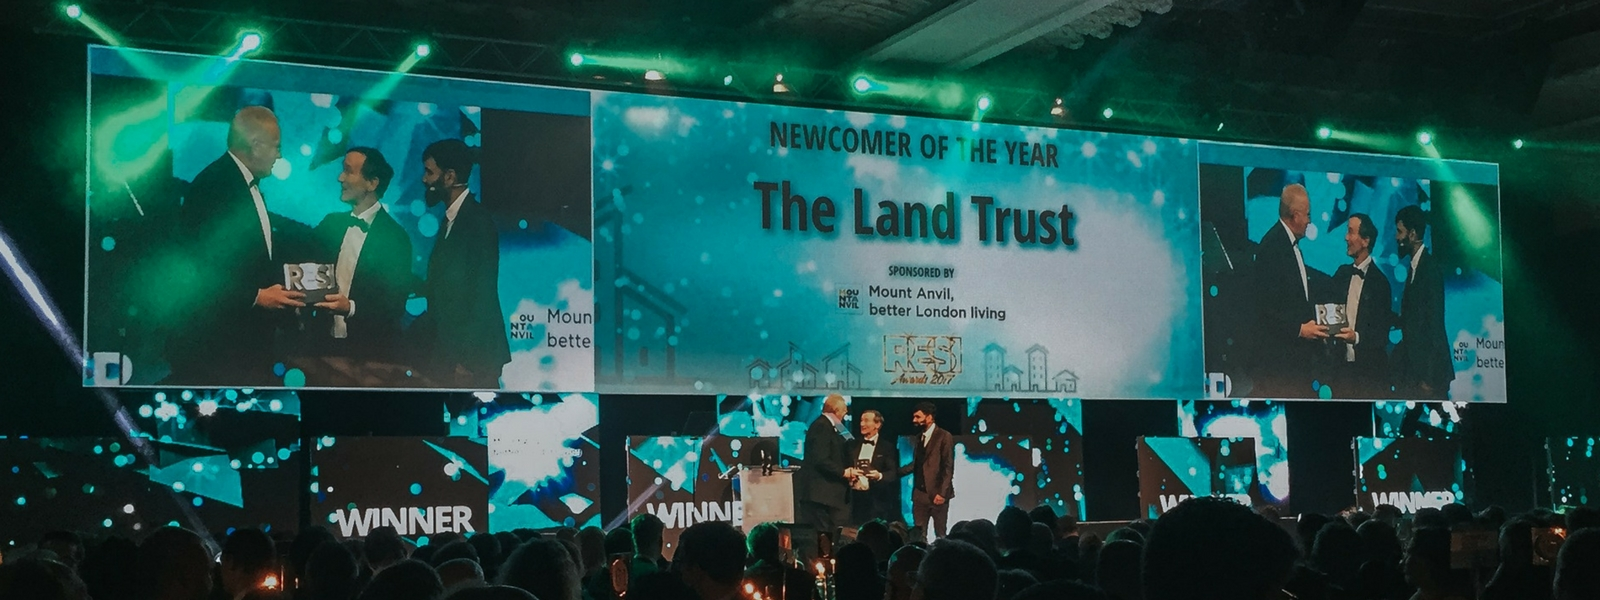 Land Trust Residential Service wins Newcomer of the Year at the RESI Awards